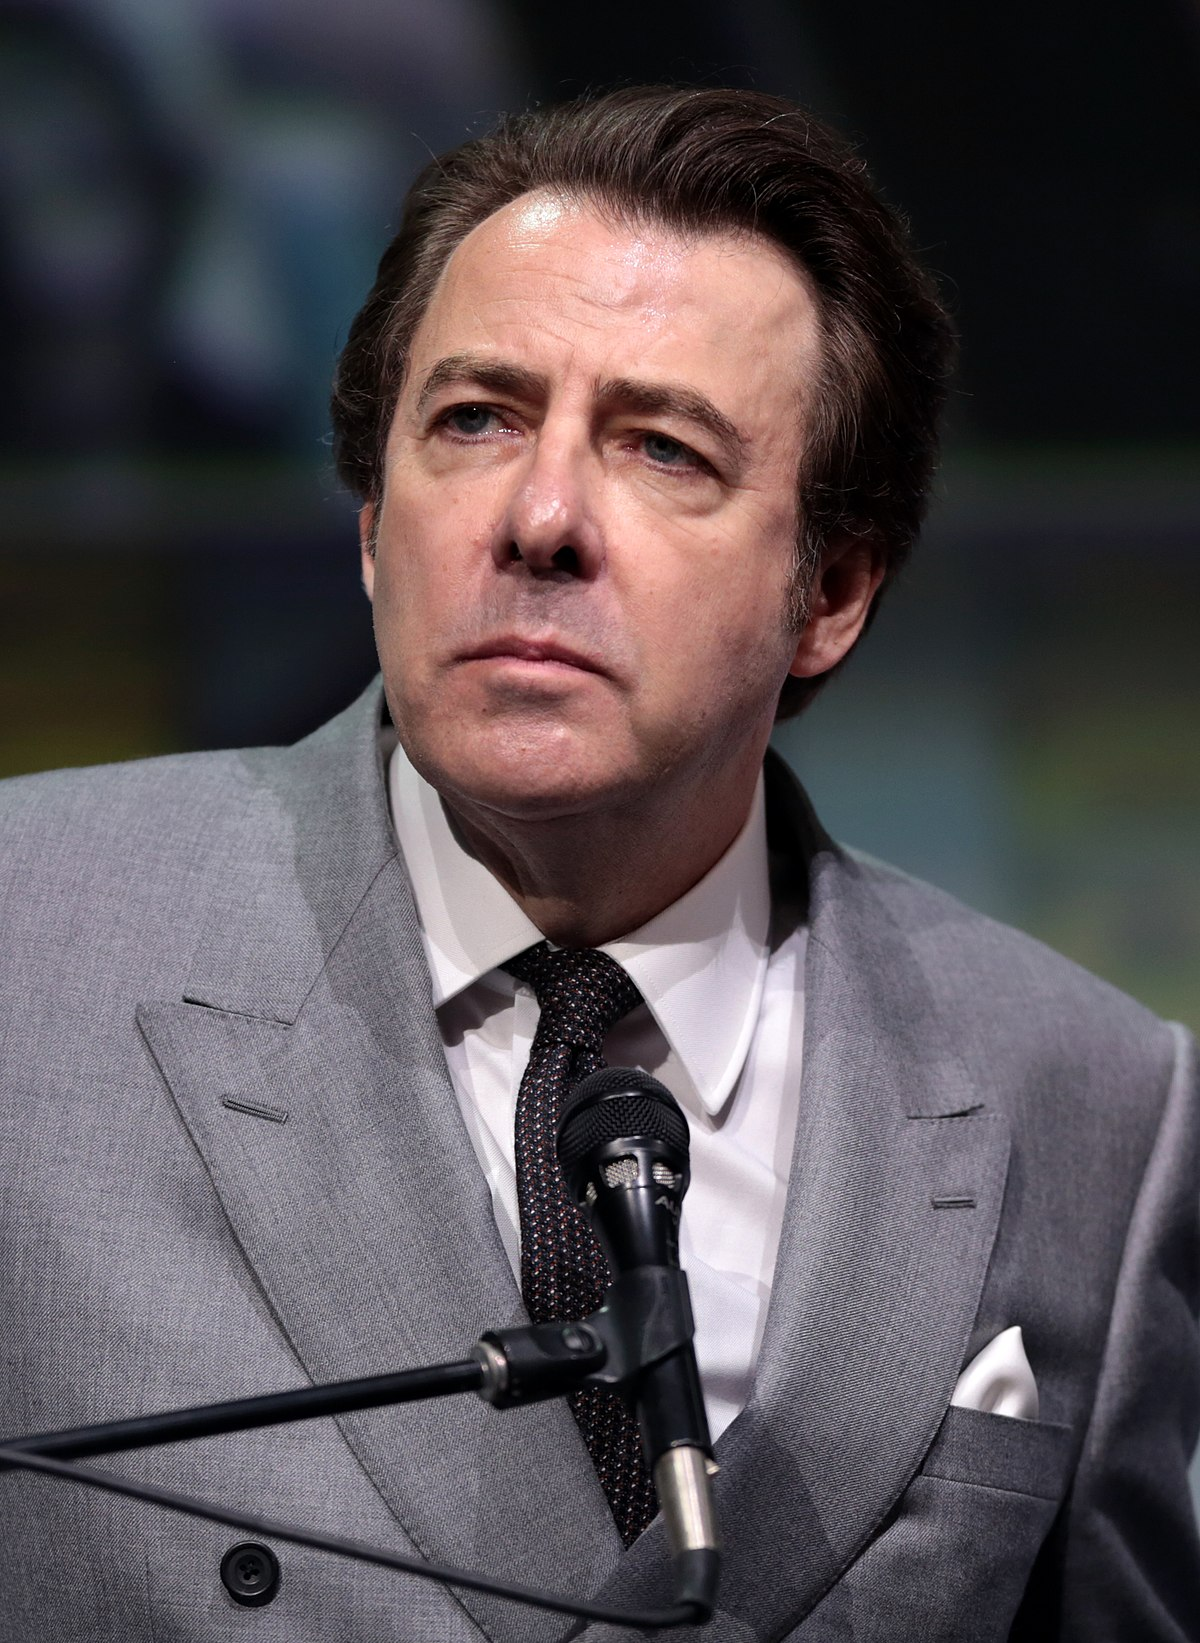 Jonathan Ross - Wikipedia